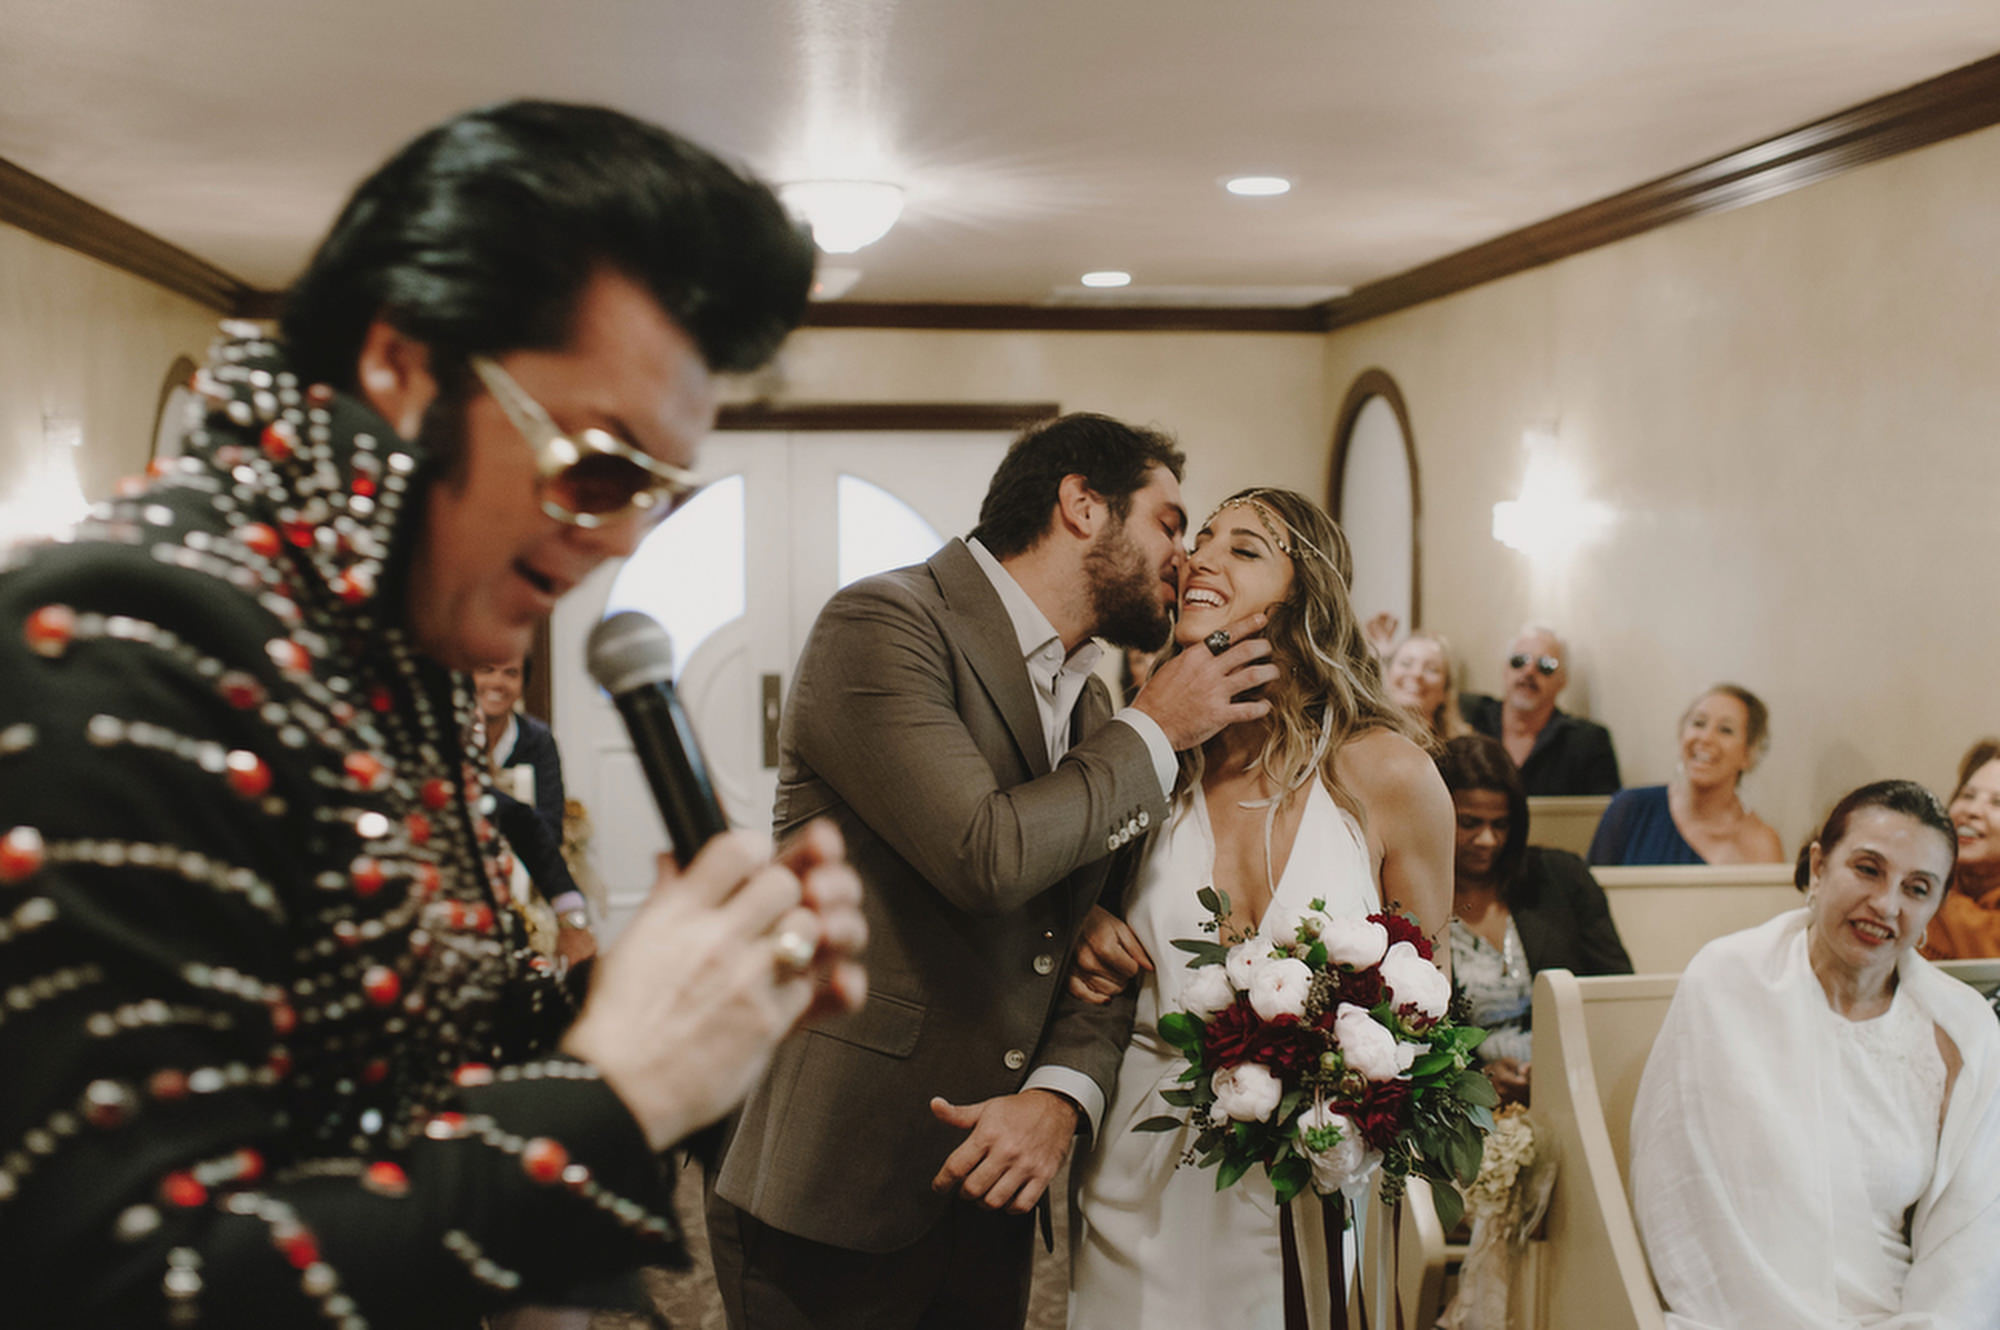 Vegas ceremony with Elvis - photo by Kristen Marie Parker